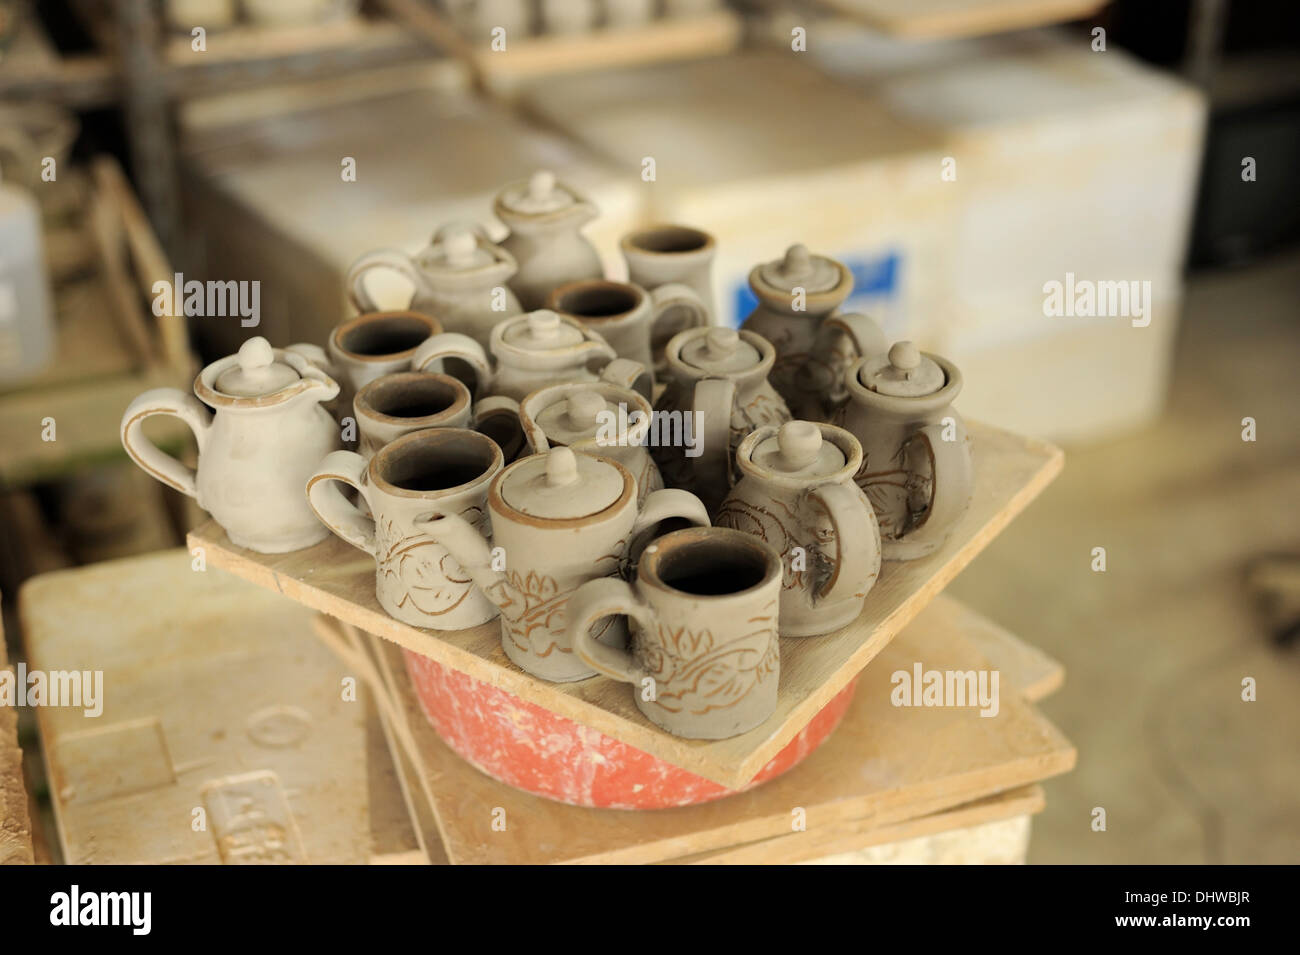 The Tsuboya Pottery district in Naha City, Okinawa is a popular destination for handmade pottery. - Stock Image